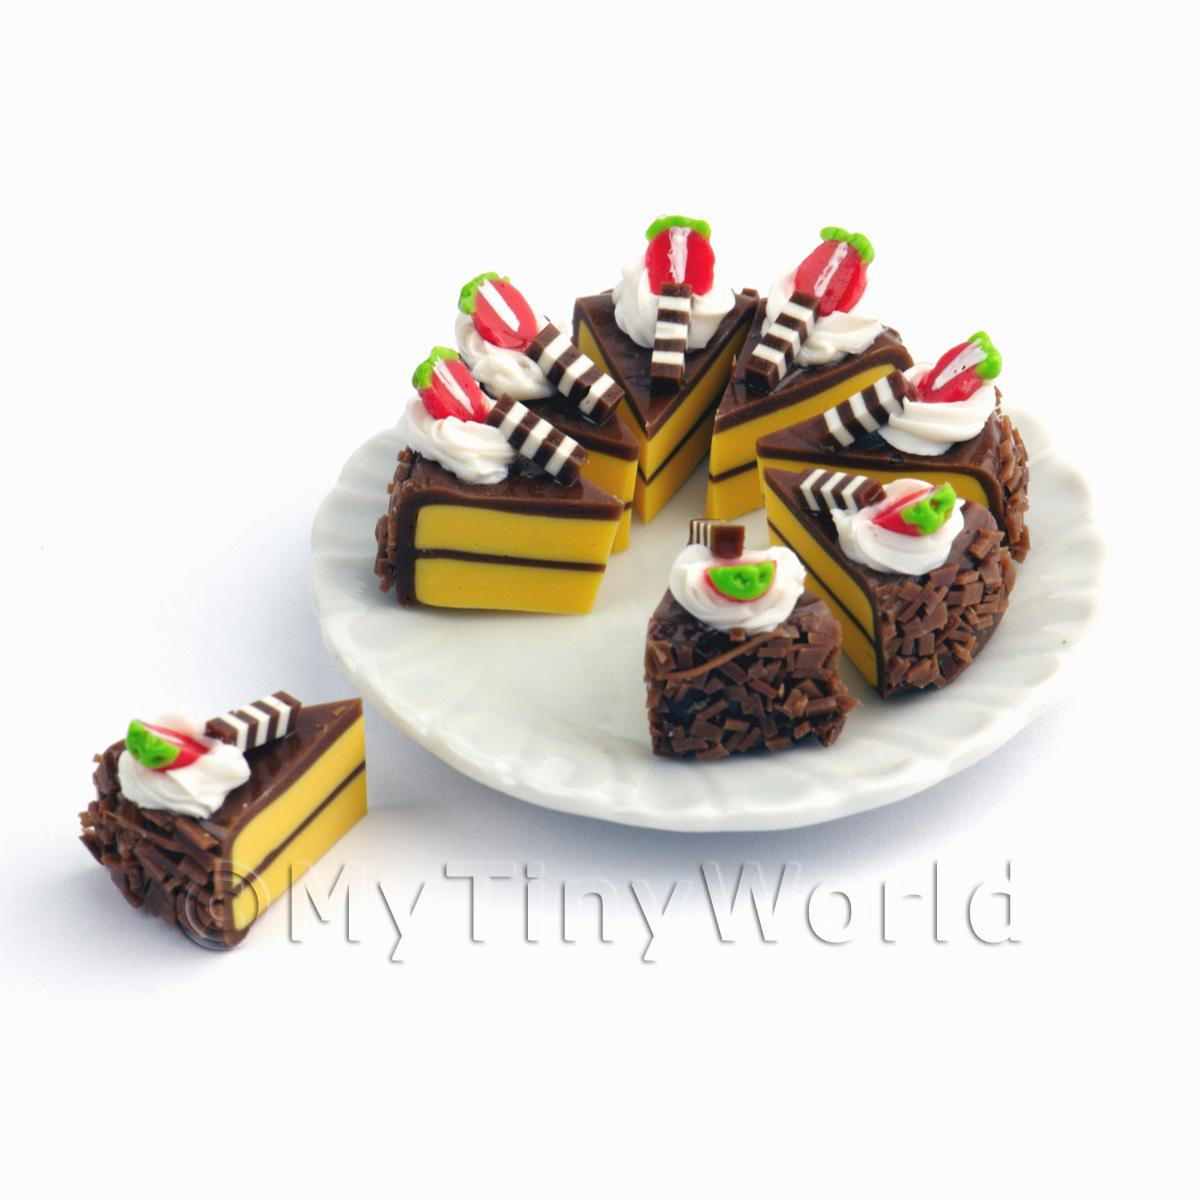 Miniature Whole Sliced Chocolate Cake